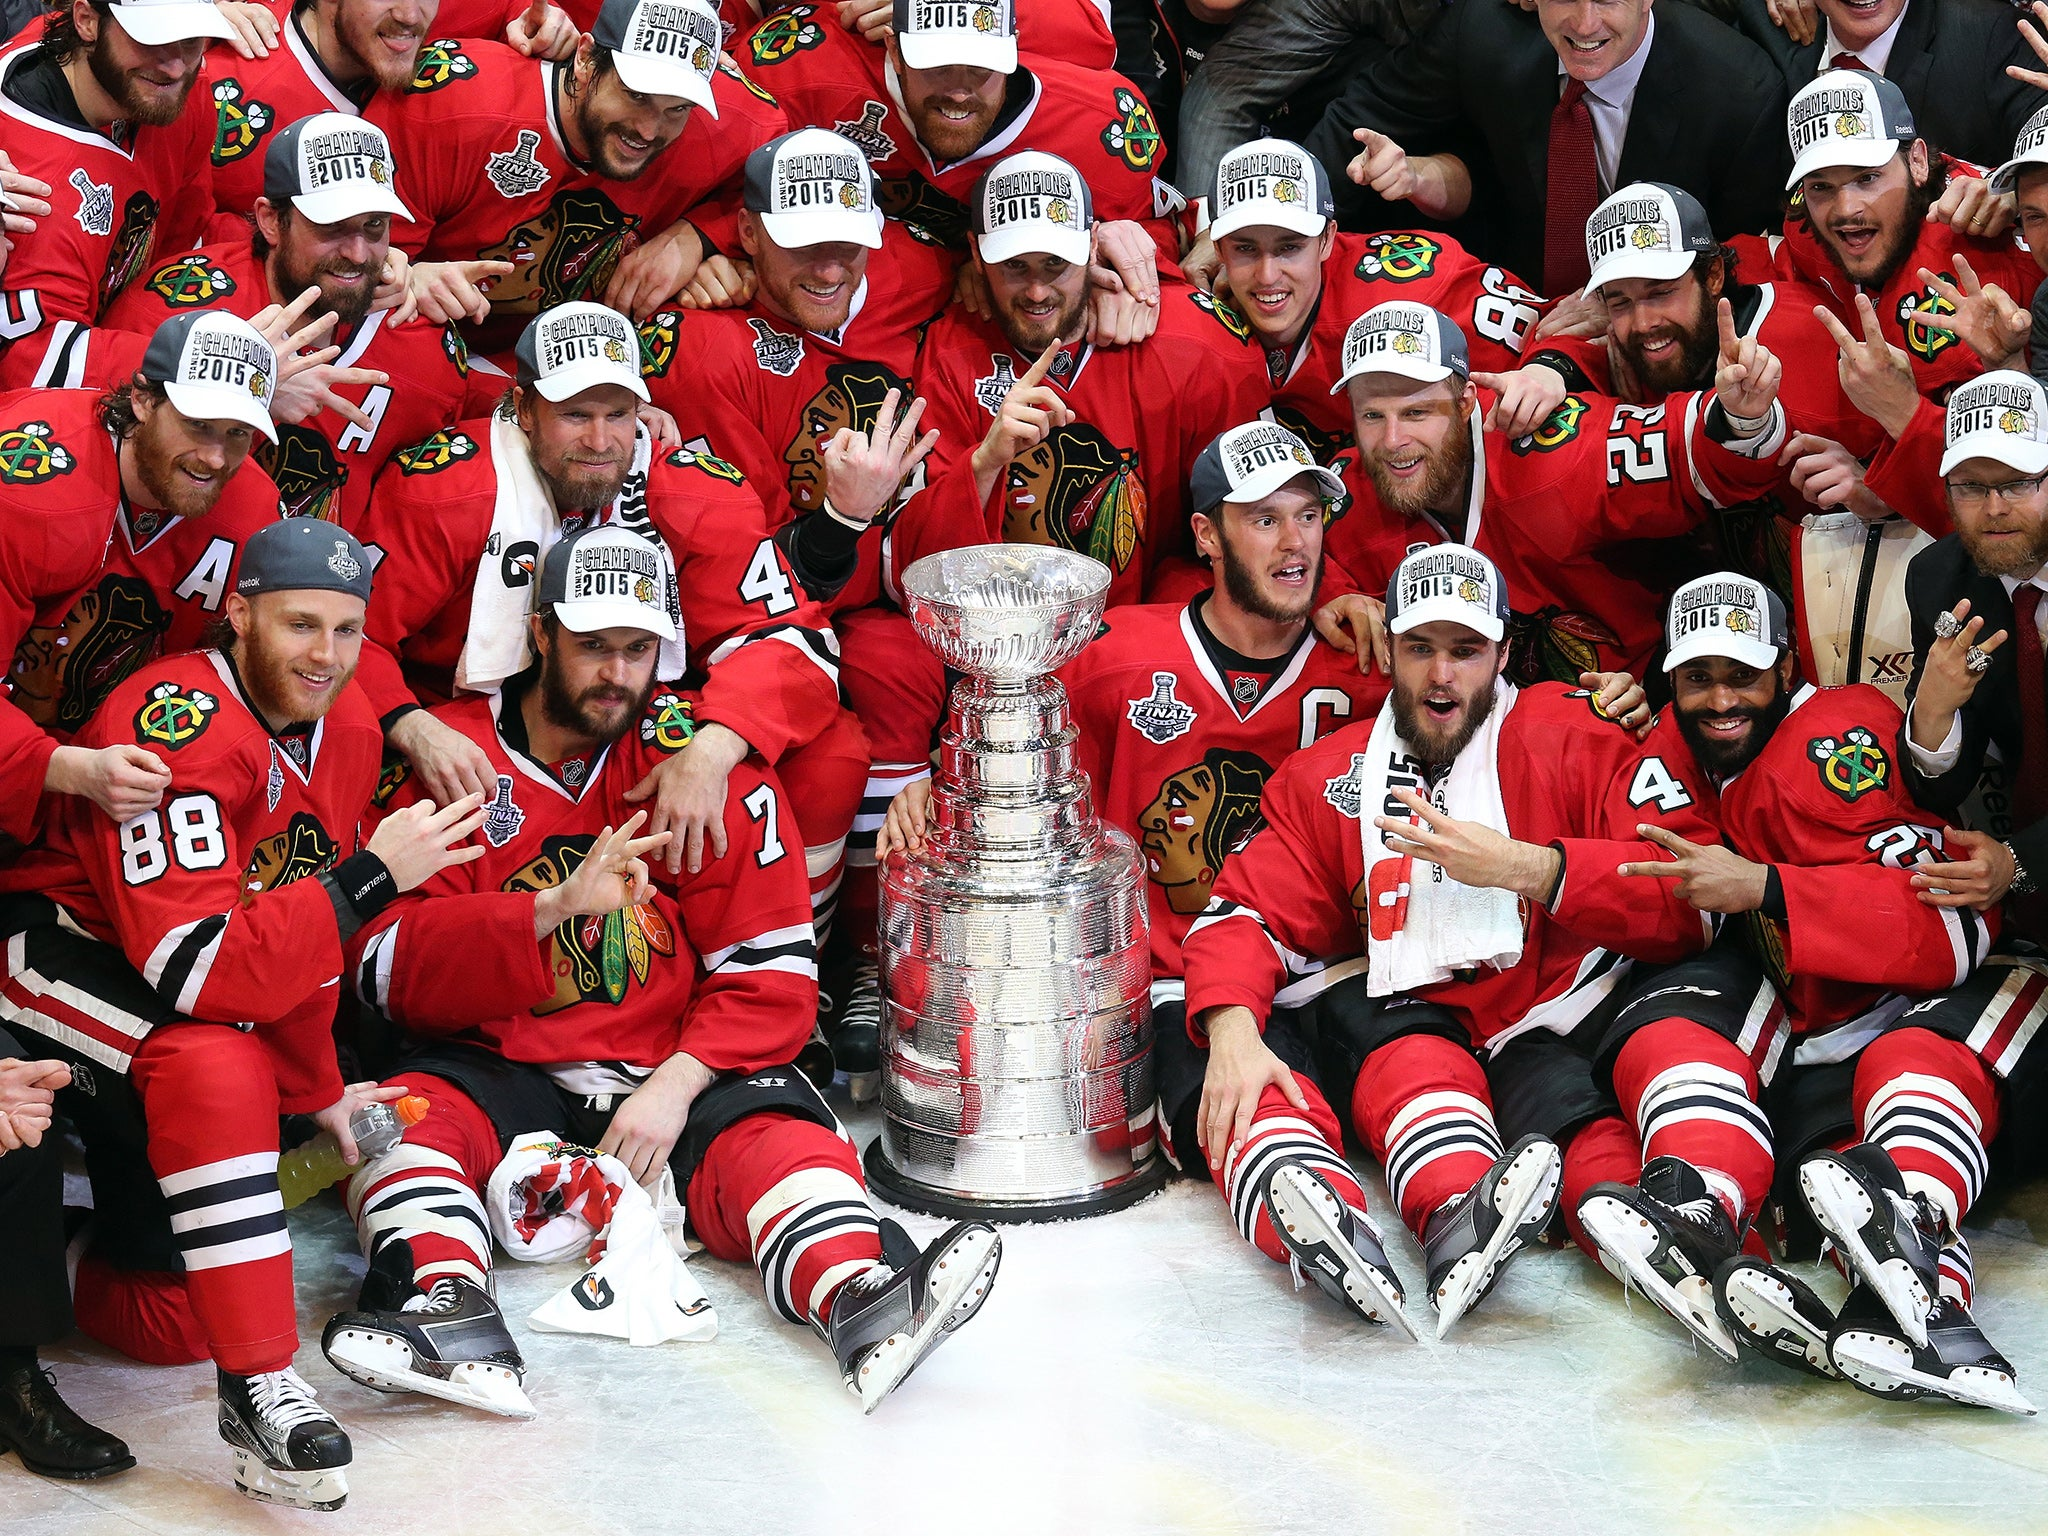 stanley cup 2015: chicago blackhawks win the trophy after 2-0 win